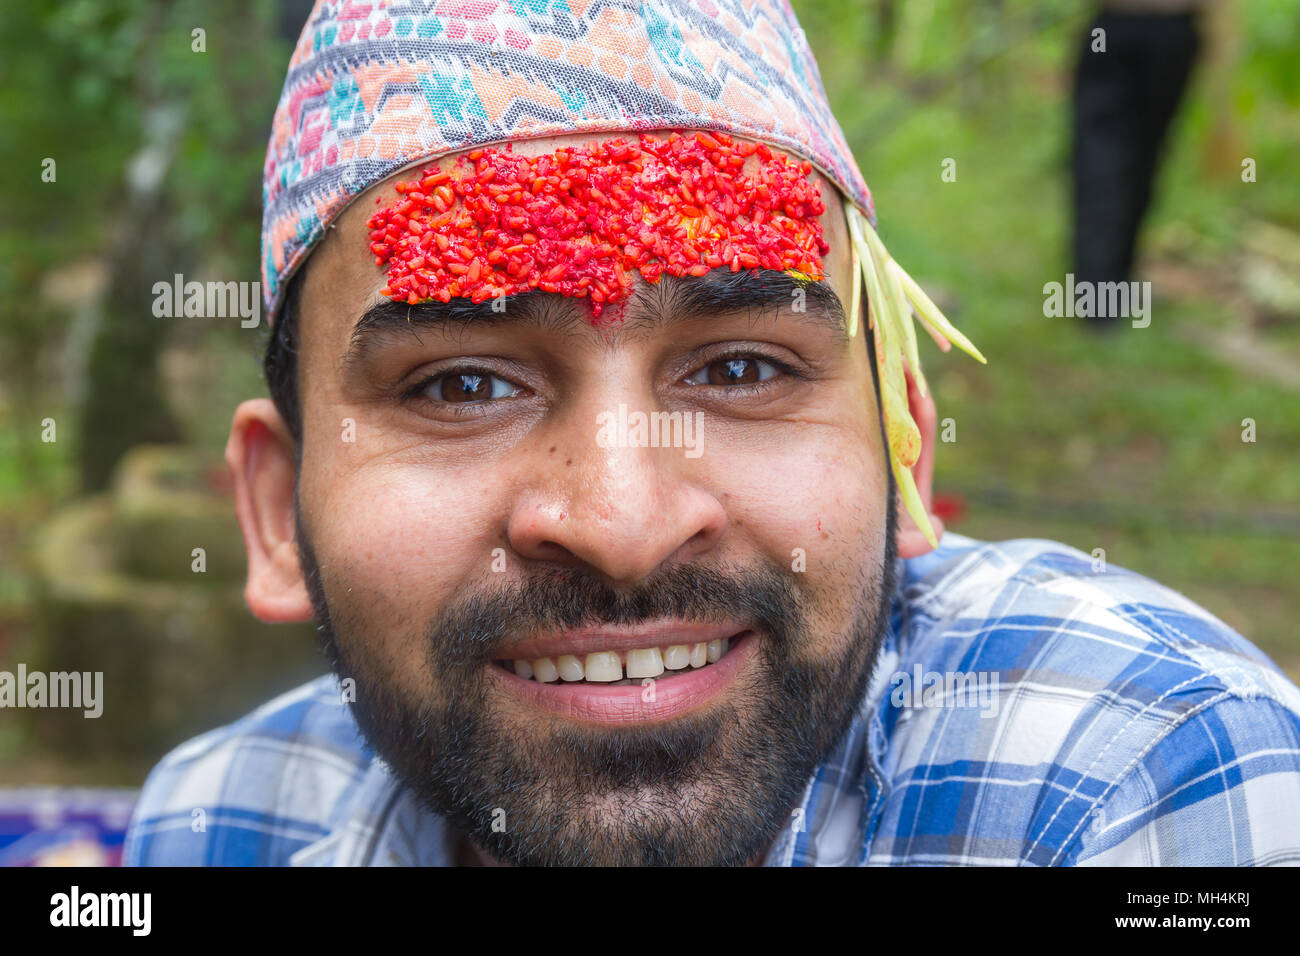 Gorkha,Nepal - Sep 30,2017: Portrait of a happy nepali man at dashain festival in Nepal. - Stock Image